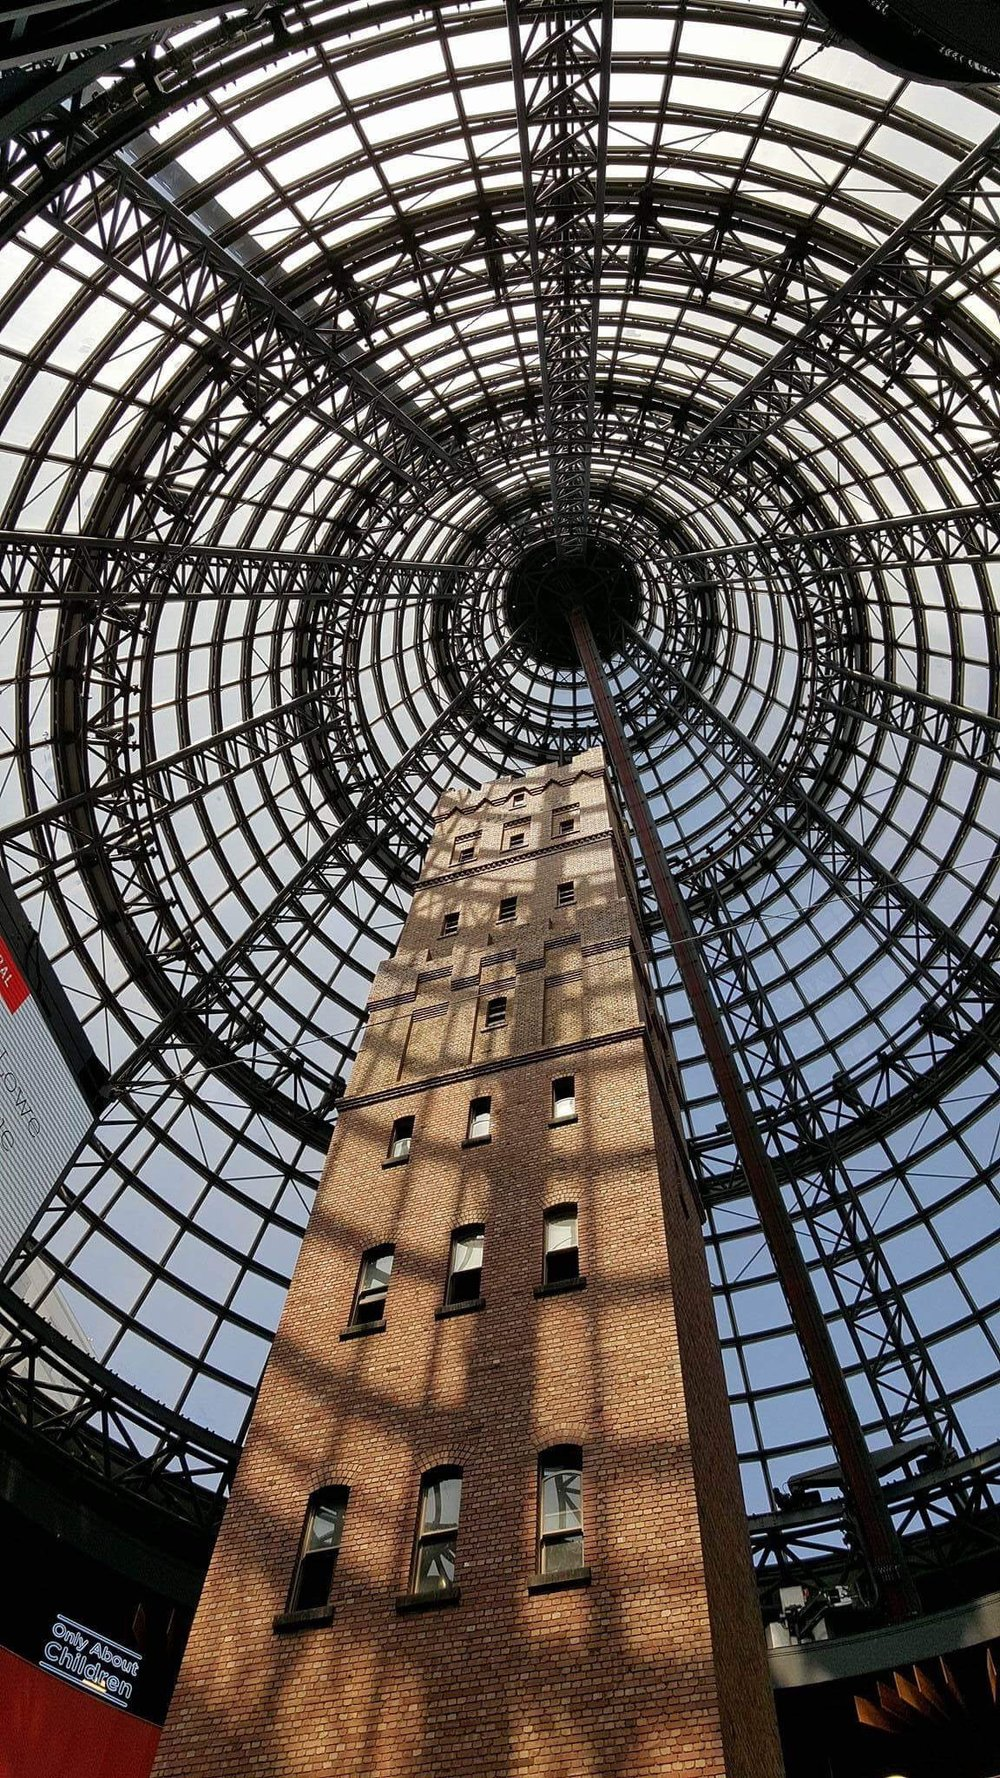 Under the dome that is Melbourne Central.